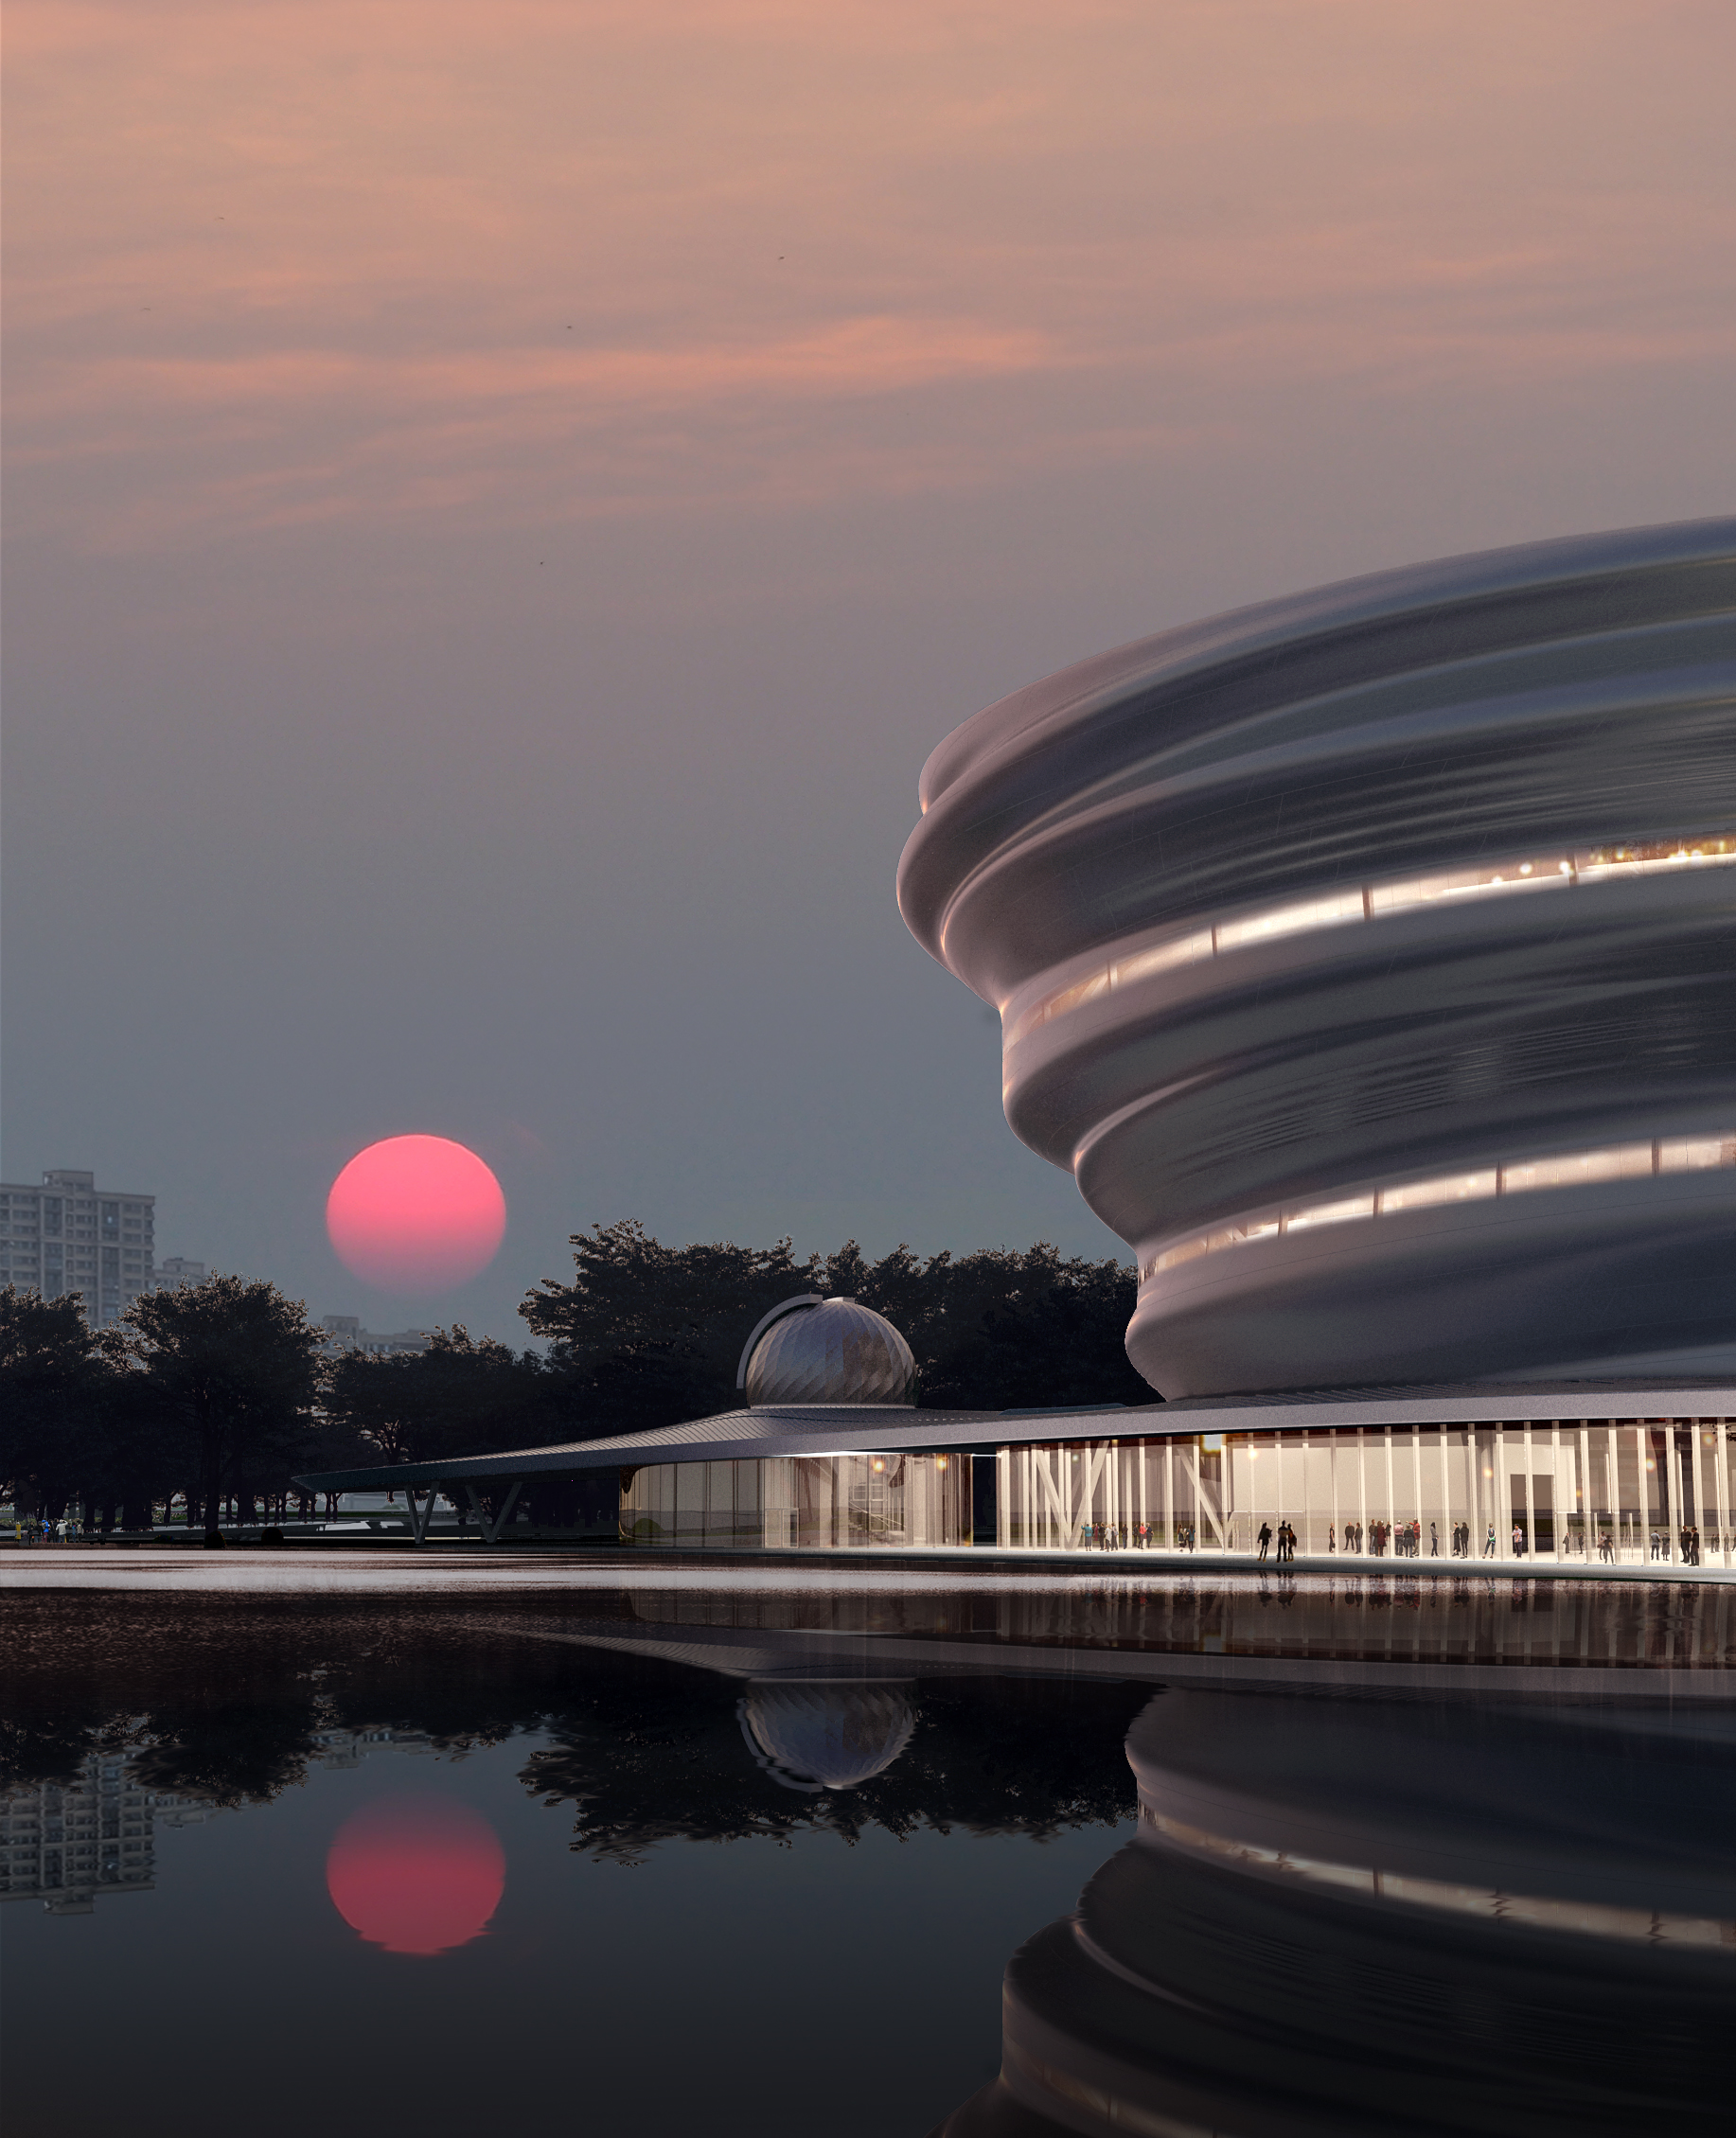 01_MAD_Hainan Science and Technology Museum_sunset view